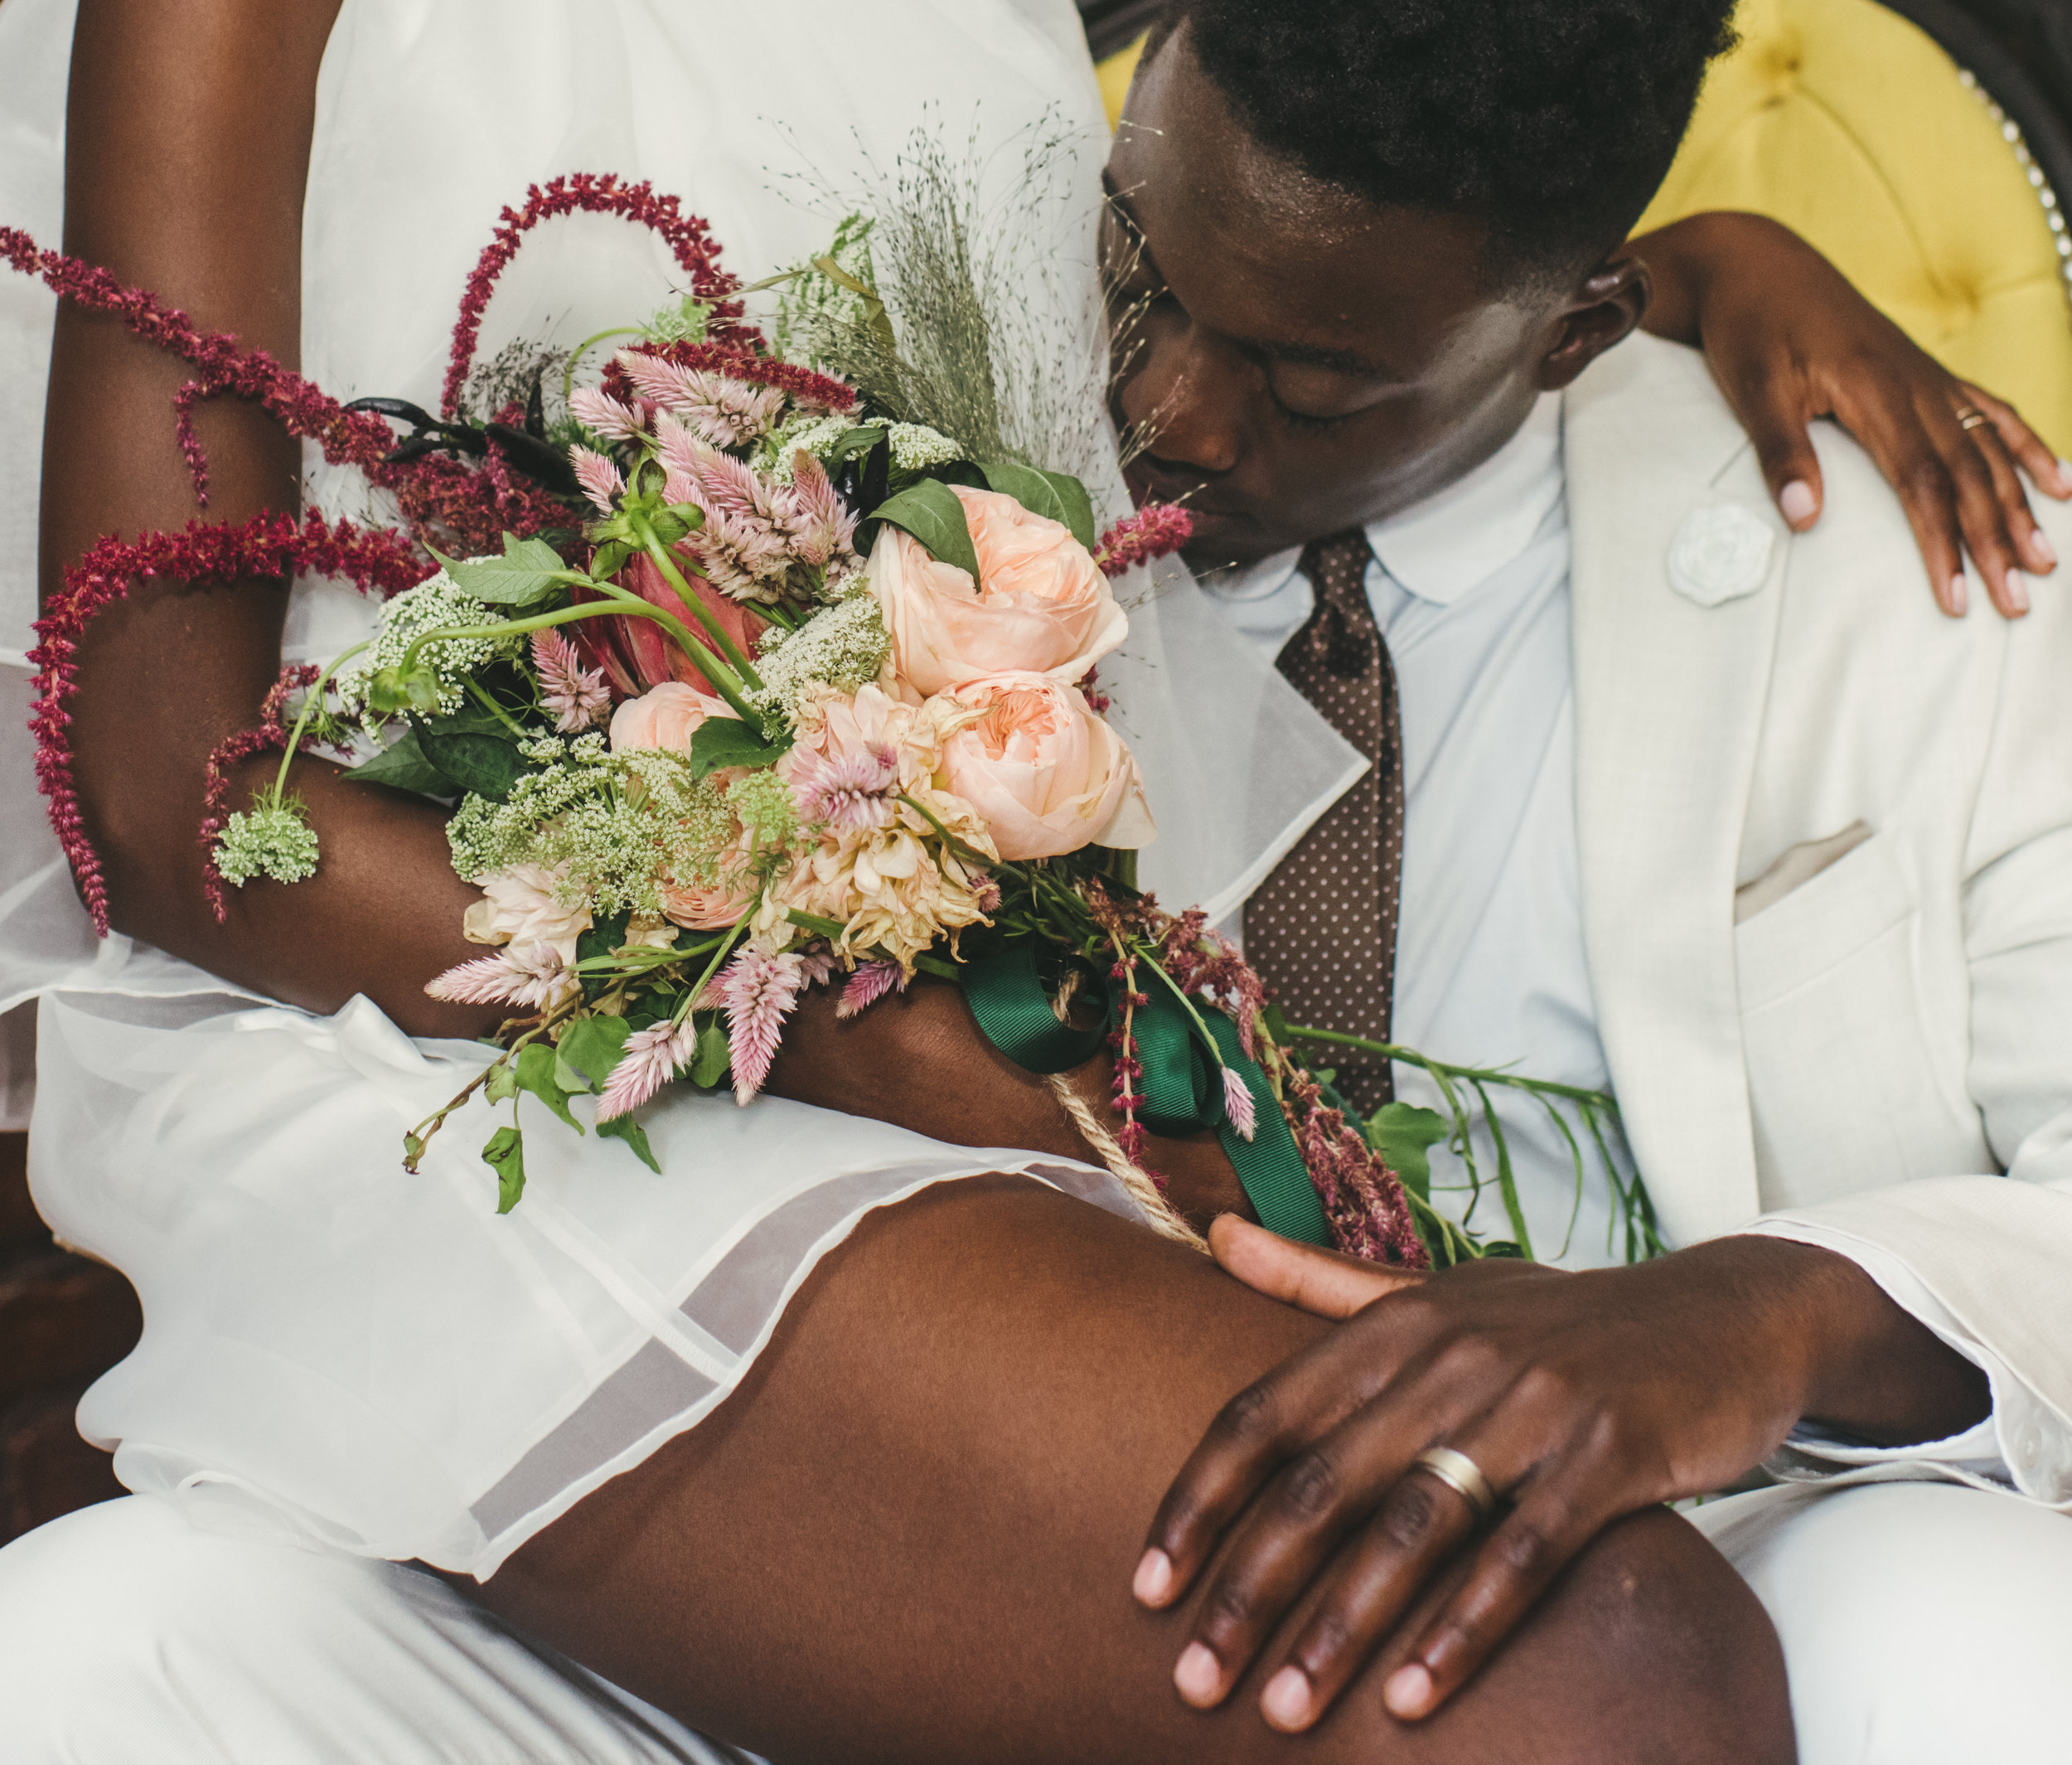 BROOKLYN BRIDE - INTIMATE WEDDING PHOTOGRAPHER - TWOTWENTY by CHI-CHI AGBIM-22.jpg